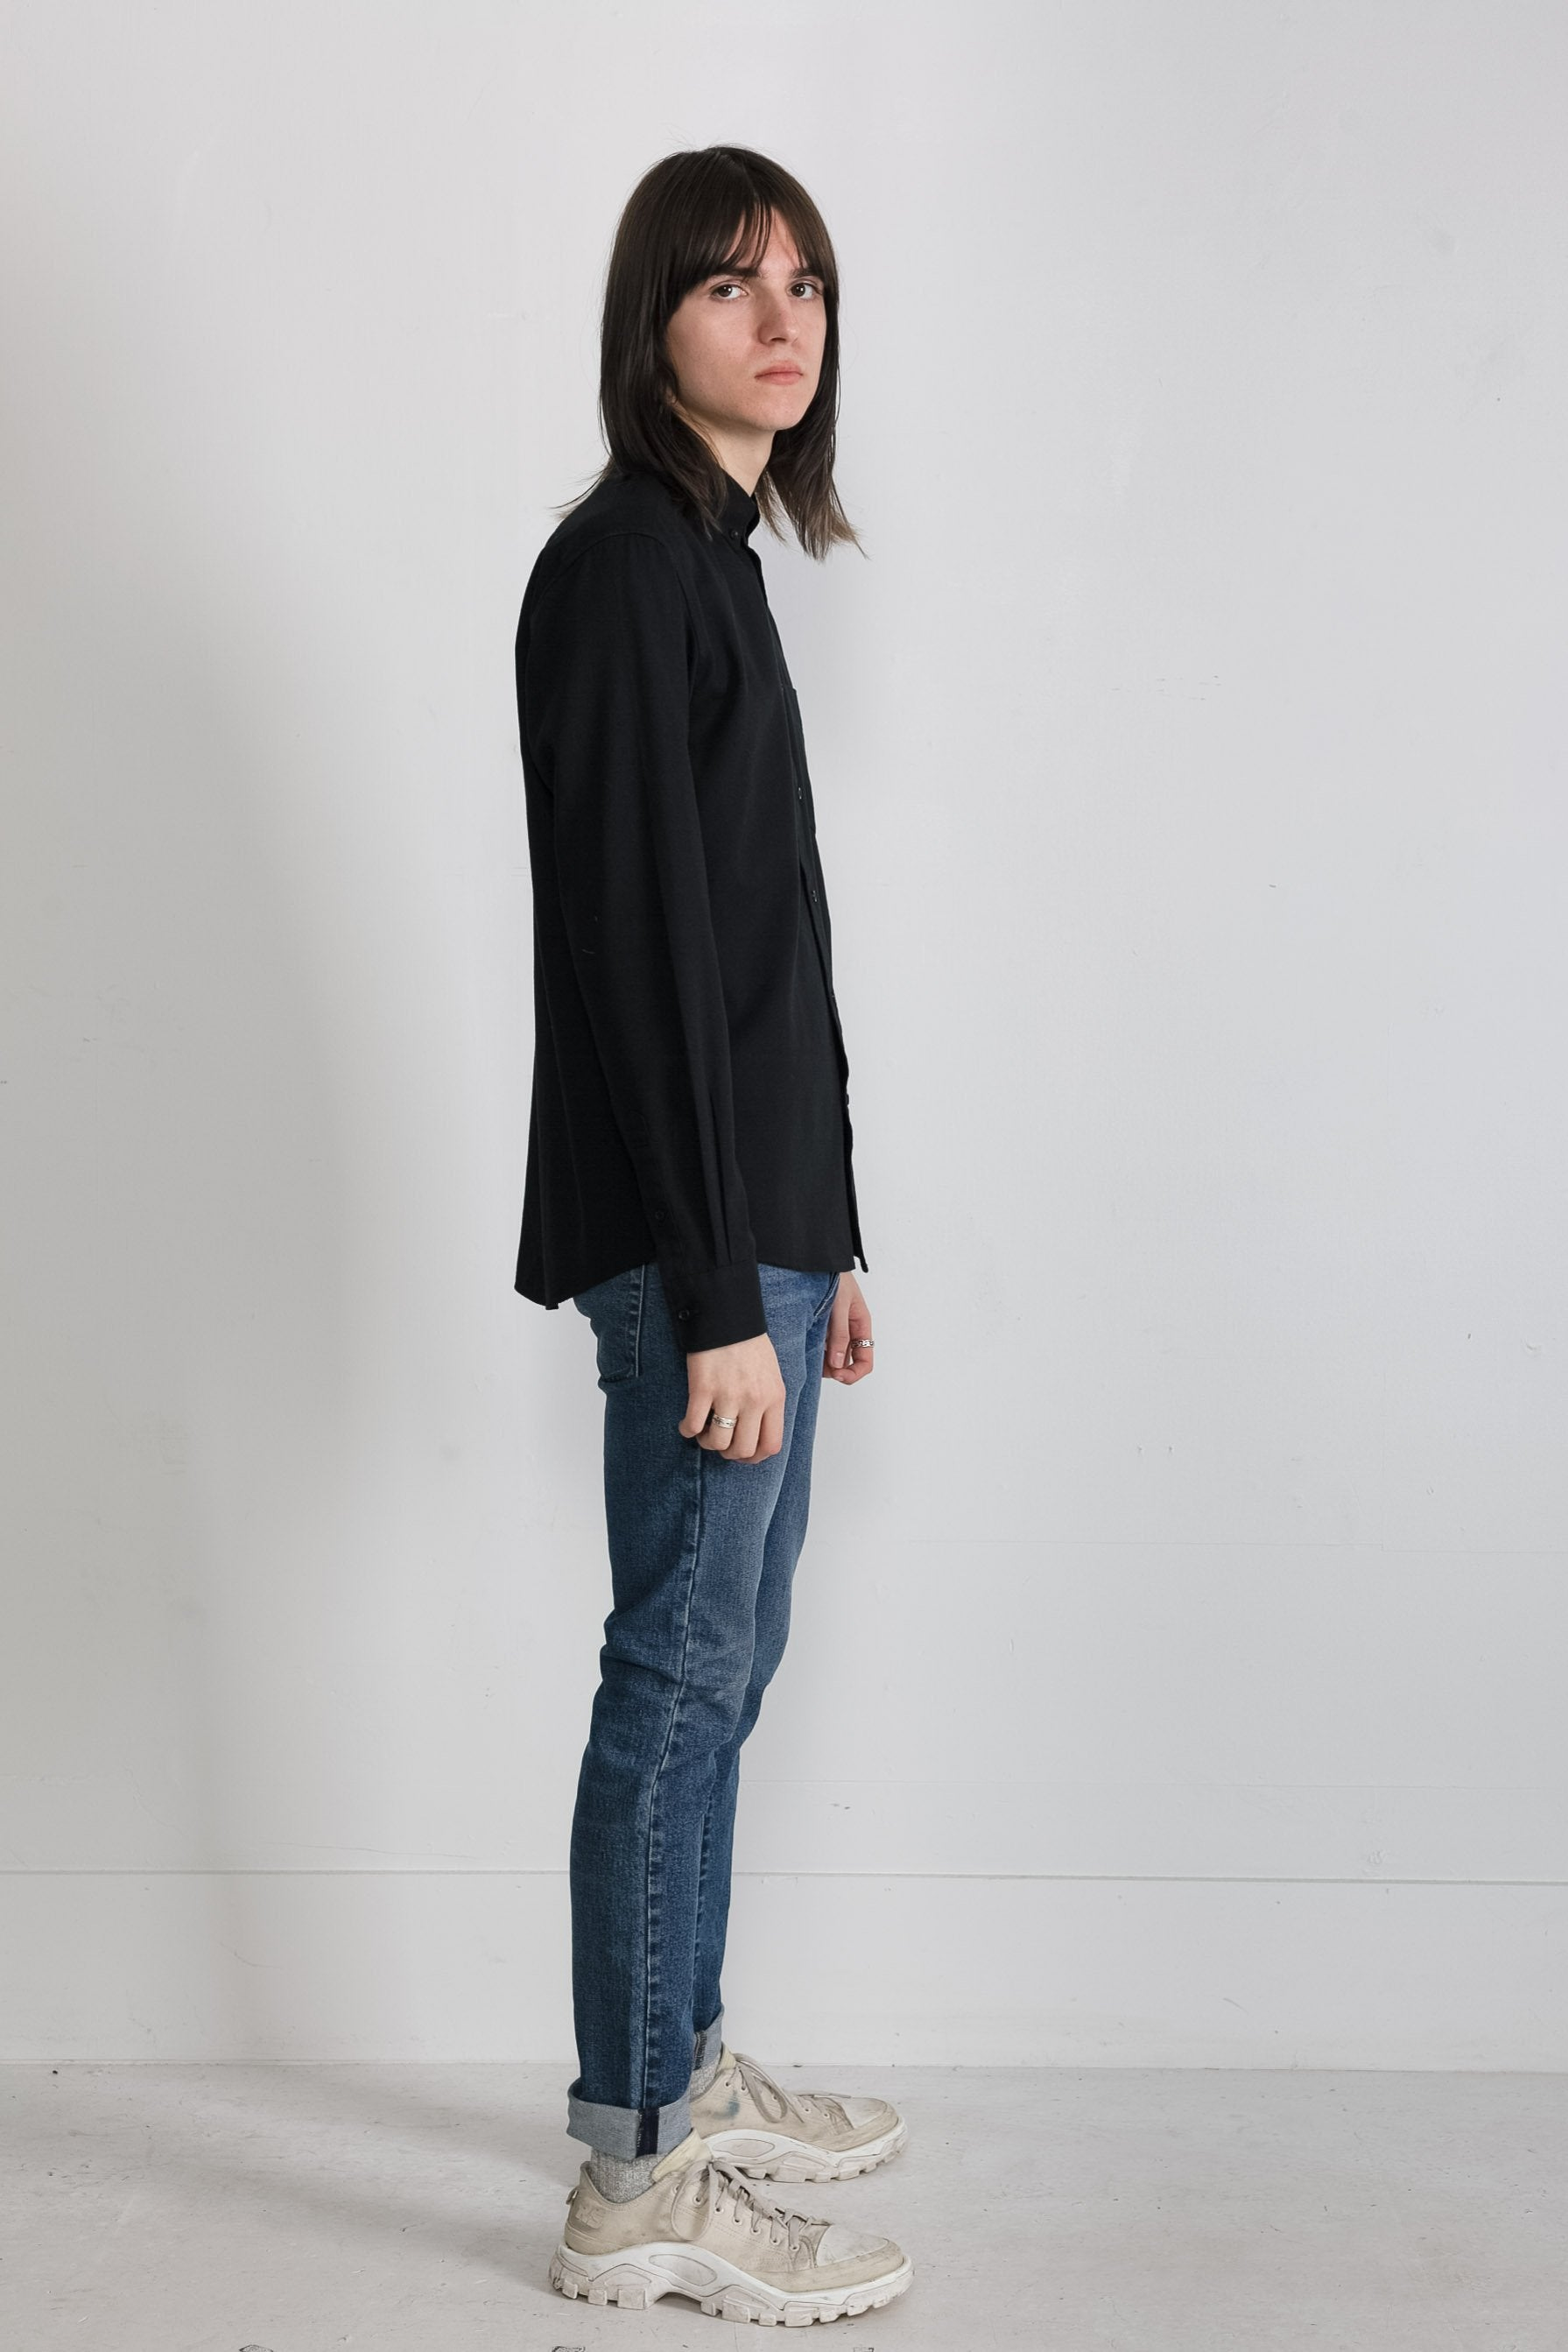 Japanese Washed Oxford in Black NS1030-170 Slim Fit 003